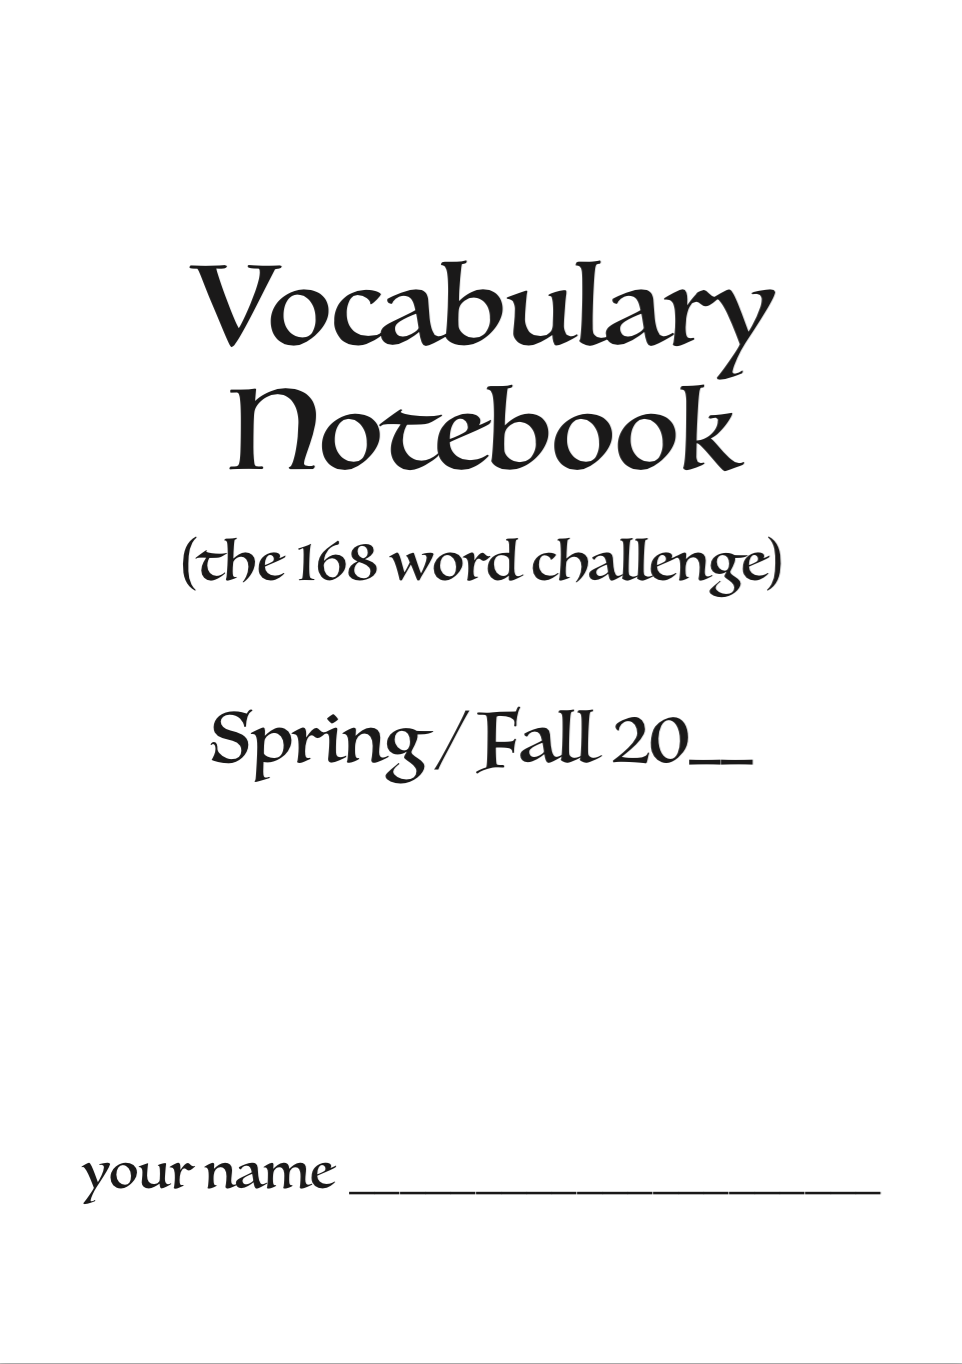 Vocabulary Notebook Preview